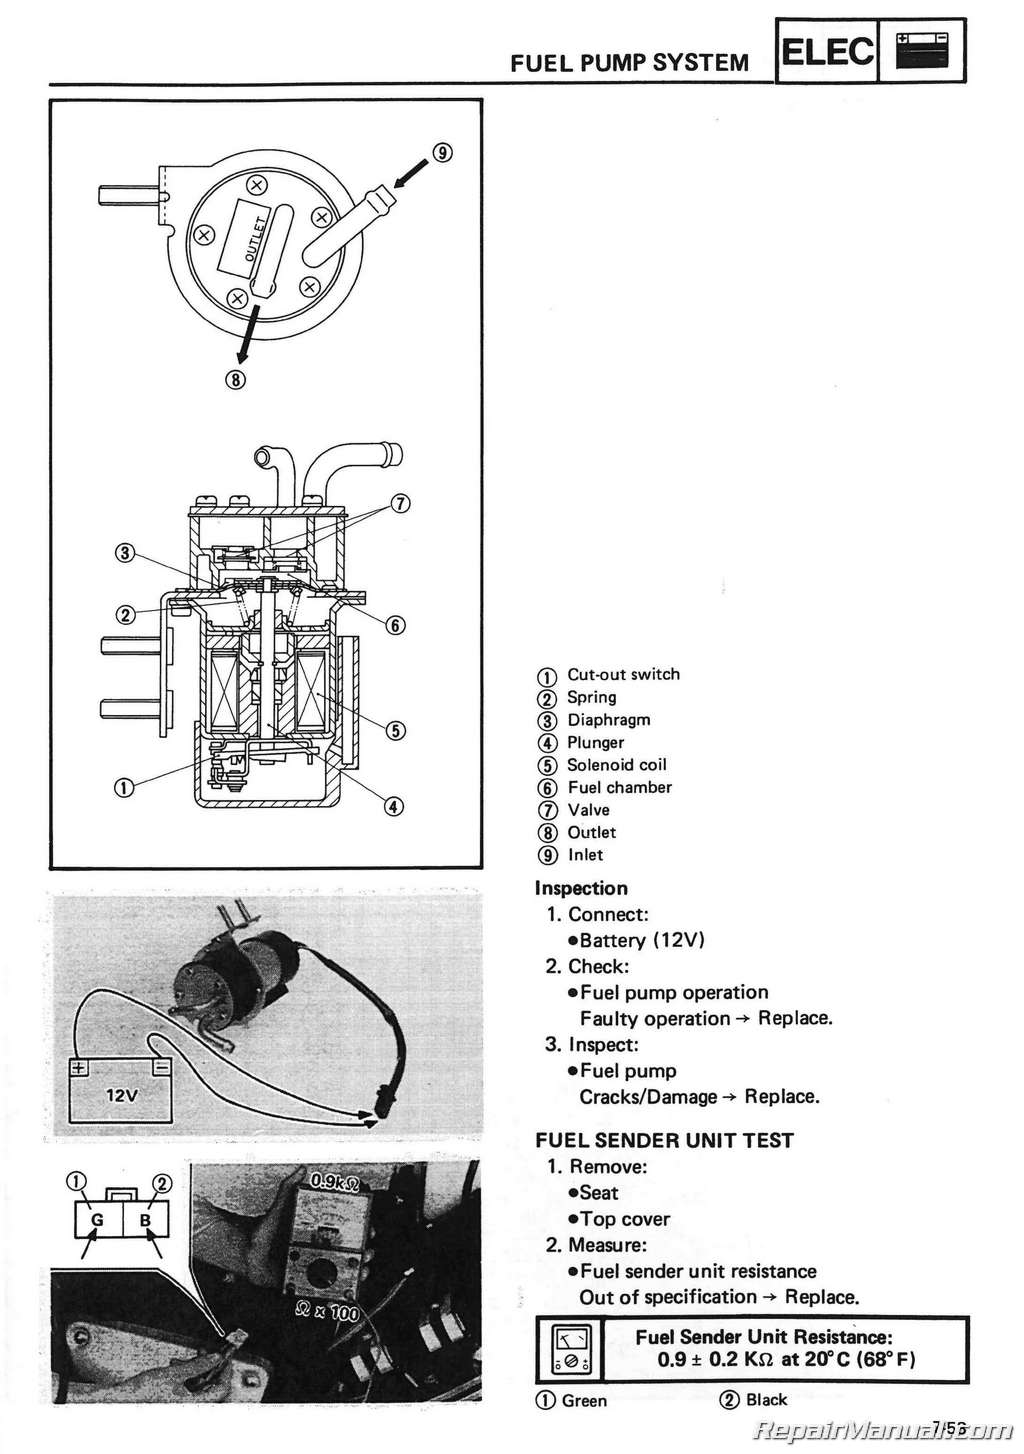 1985 2000 Yamaha Vmx1200 Vmax Motorcycle Service Manual 1981 Tt500 Ignition Wiring